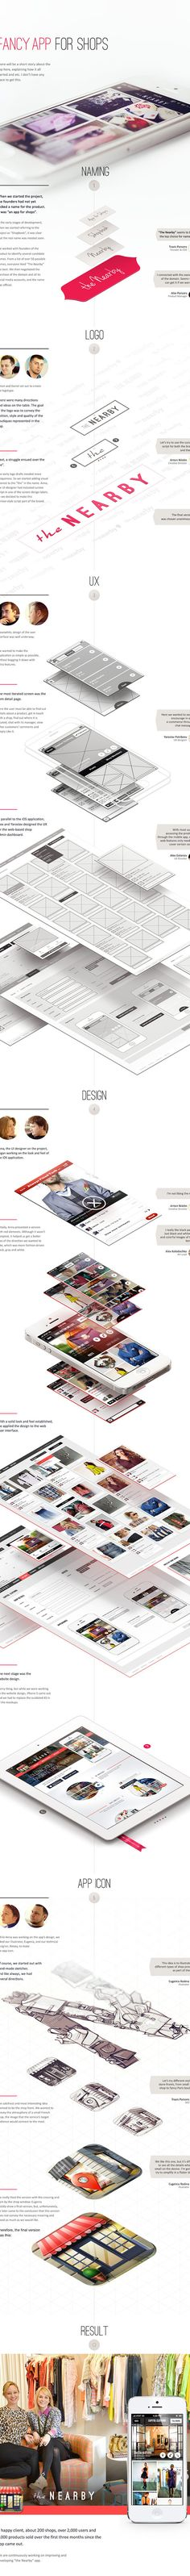 The Nearby on Behance